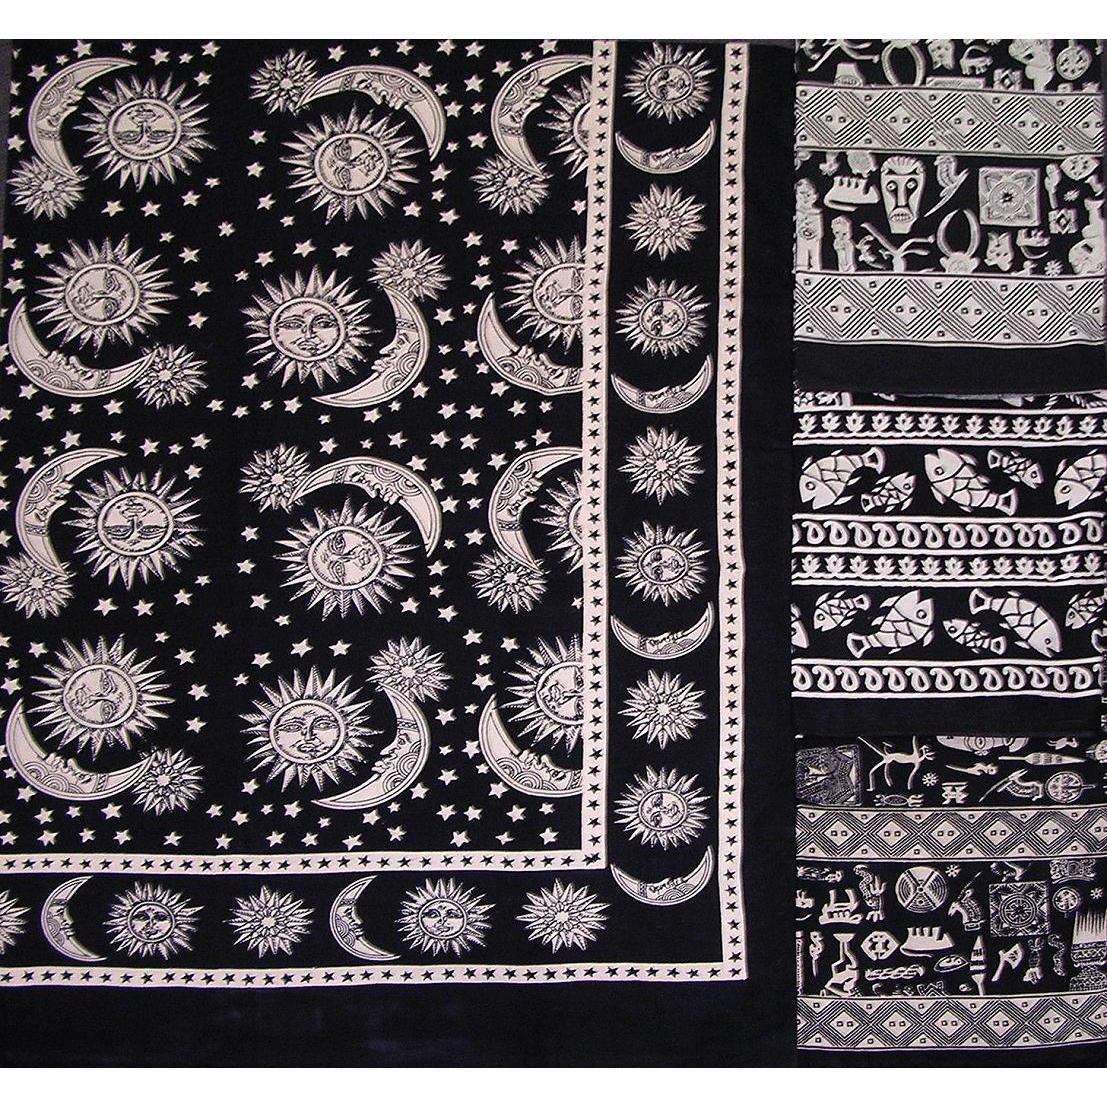 Tapestry Twin Size Black And White Sun And Stars Design